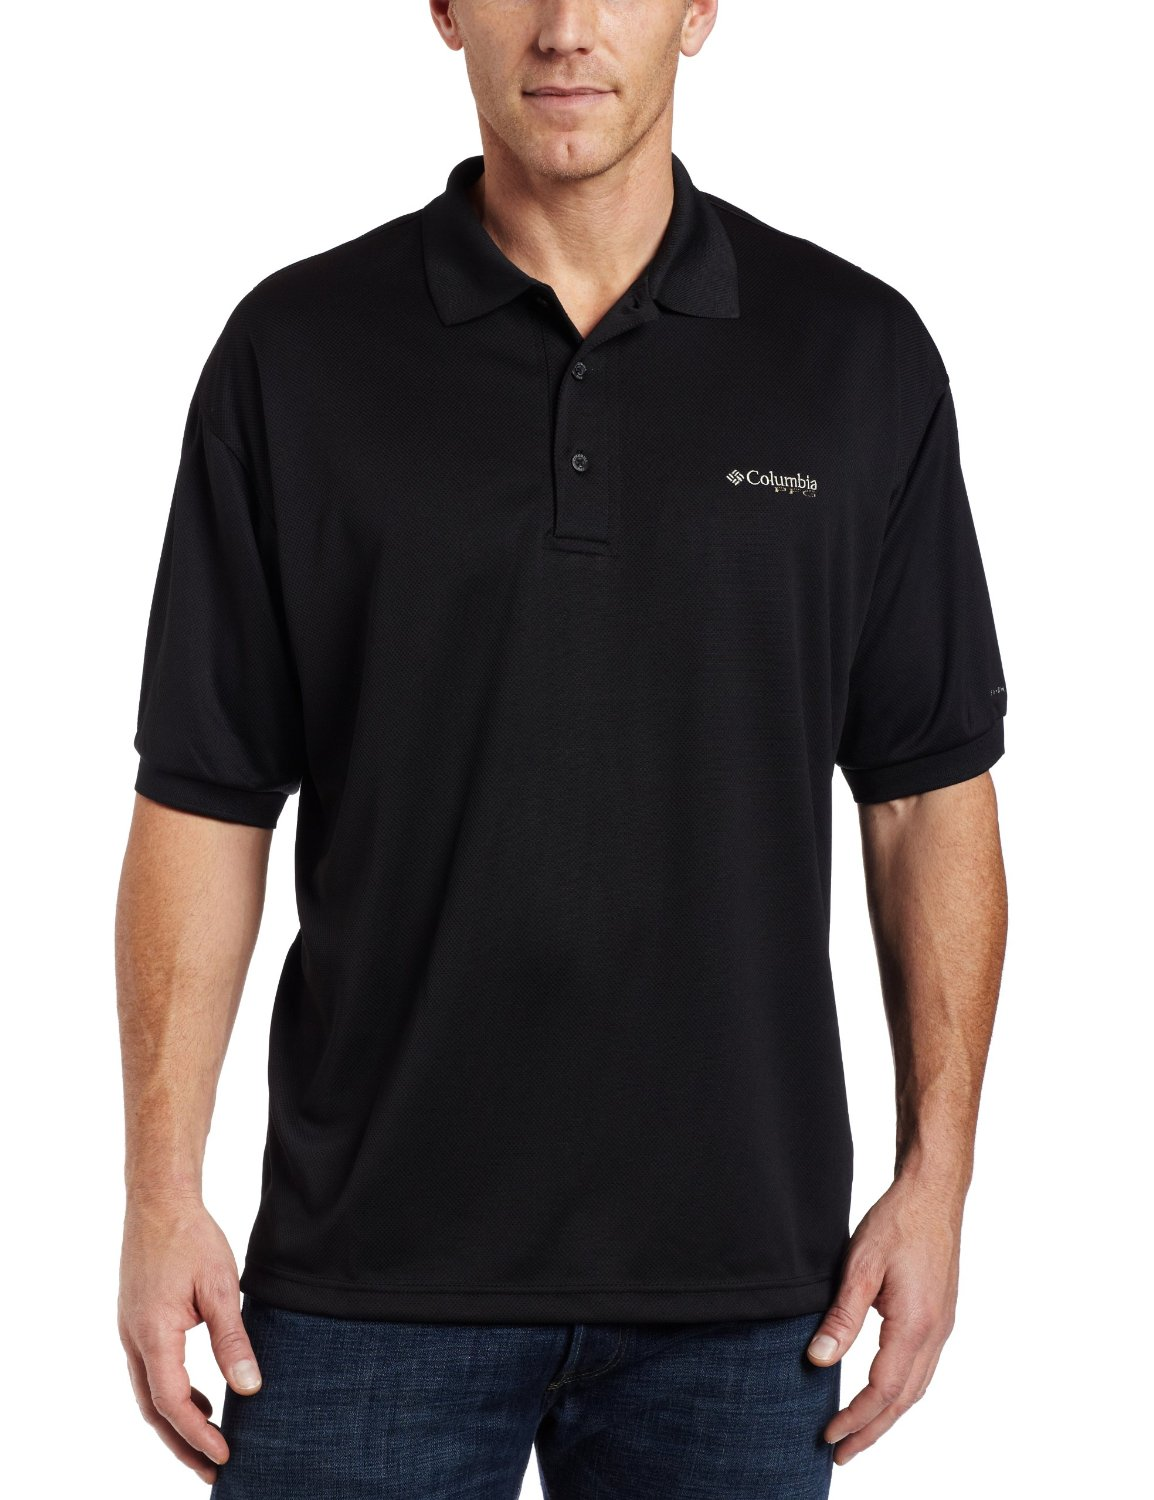 Columbia Men's Perfect Cast Polo, Black, Large